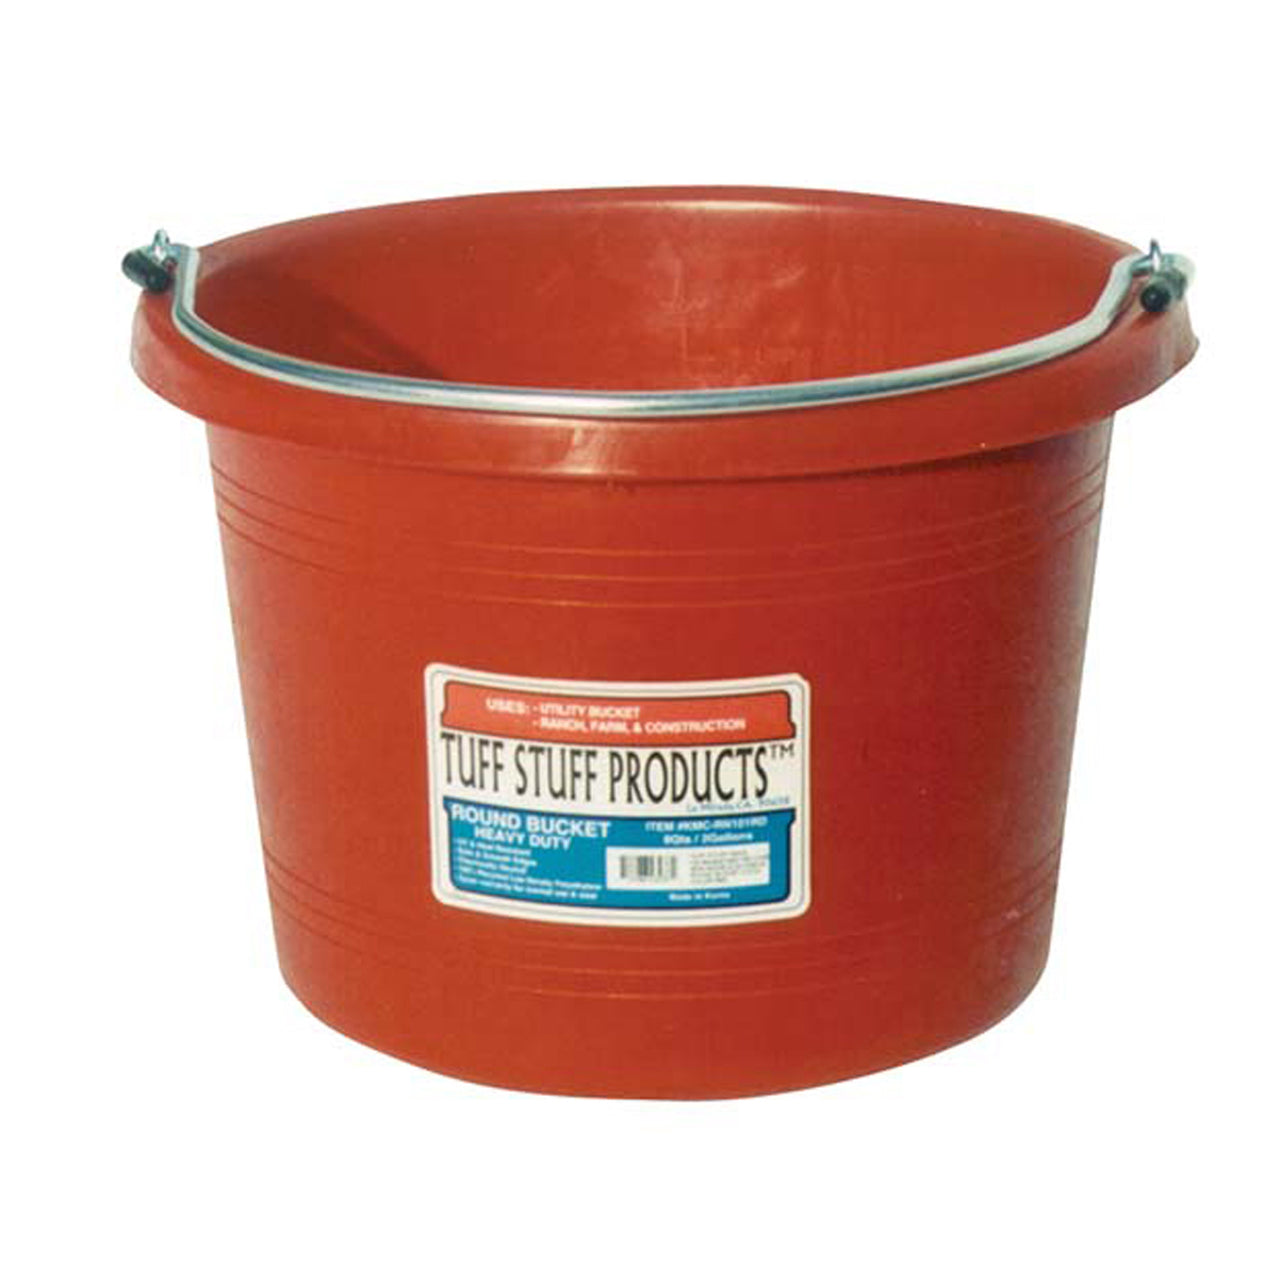 Tuff Stuff Round Bucket 8 Qts - Red - Buckets Pails Feeders Scoops Tubs Bottles Tuff Stuff - Canada